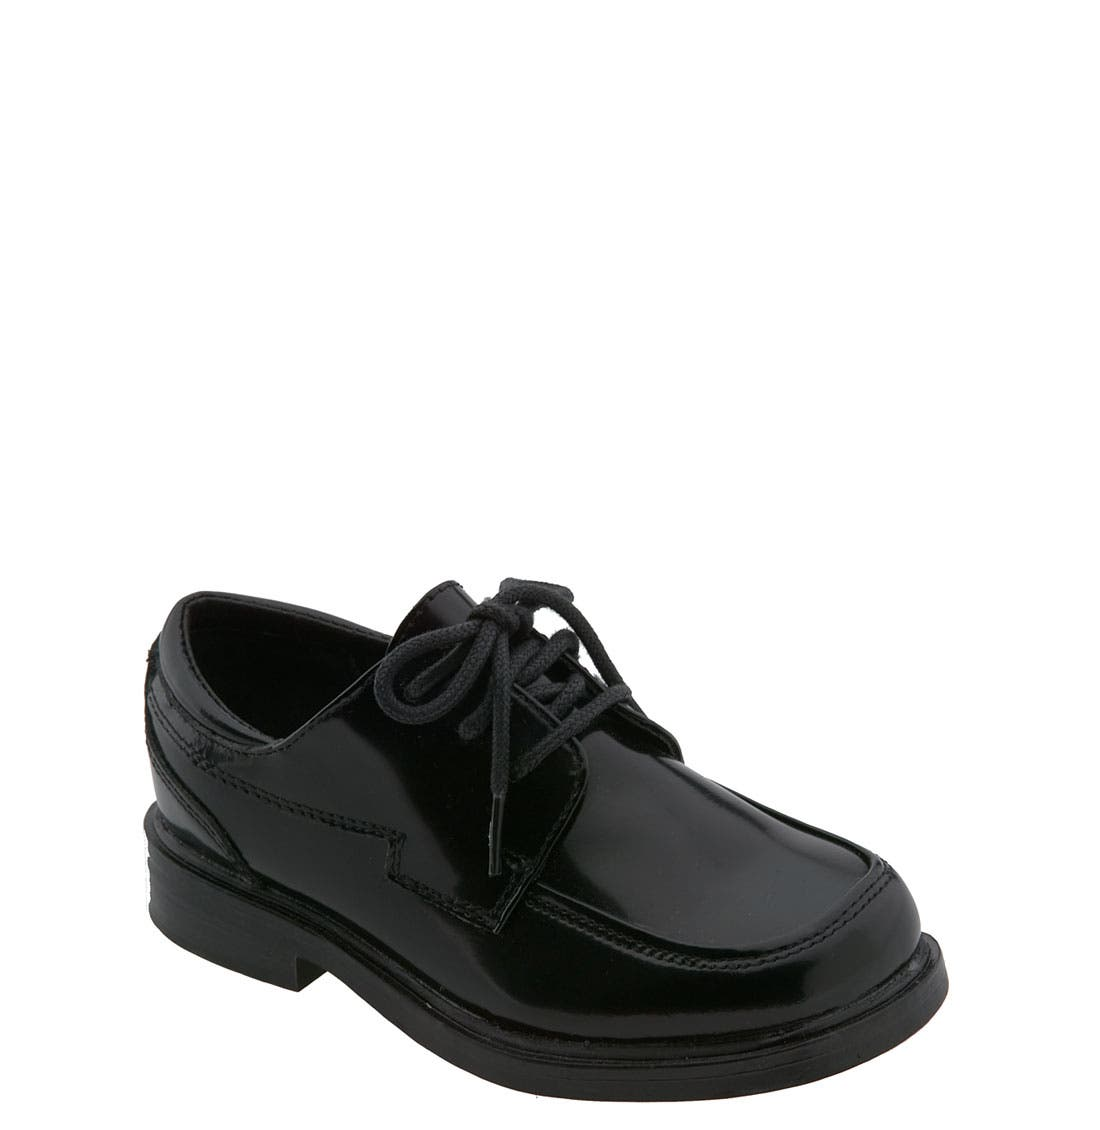 Alternate Image 1 Selected - Kenneth Cole Reaction 'T-Flex Jr' Oxford (Walker & Toddler)